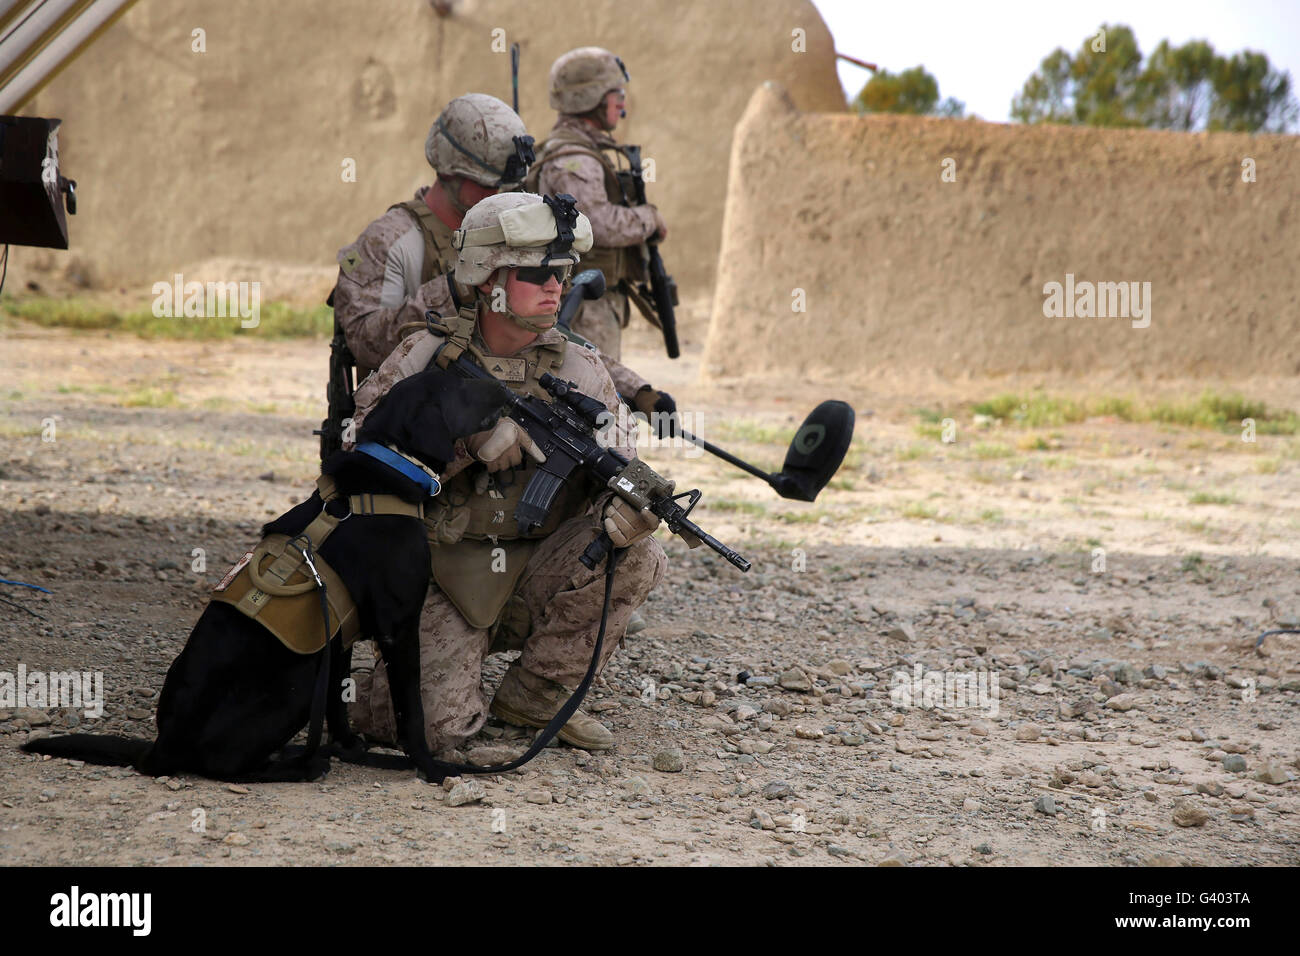 A dog handler provides security with his ID Dog by his side. - Stock Image